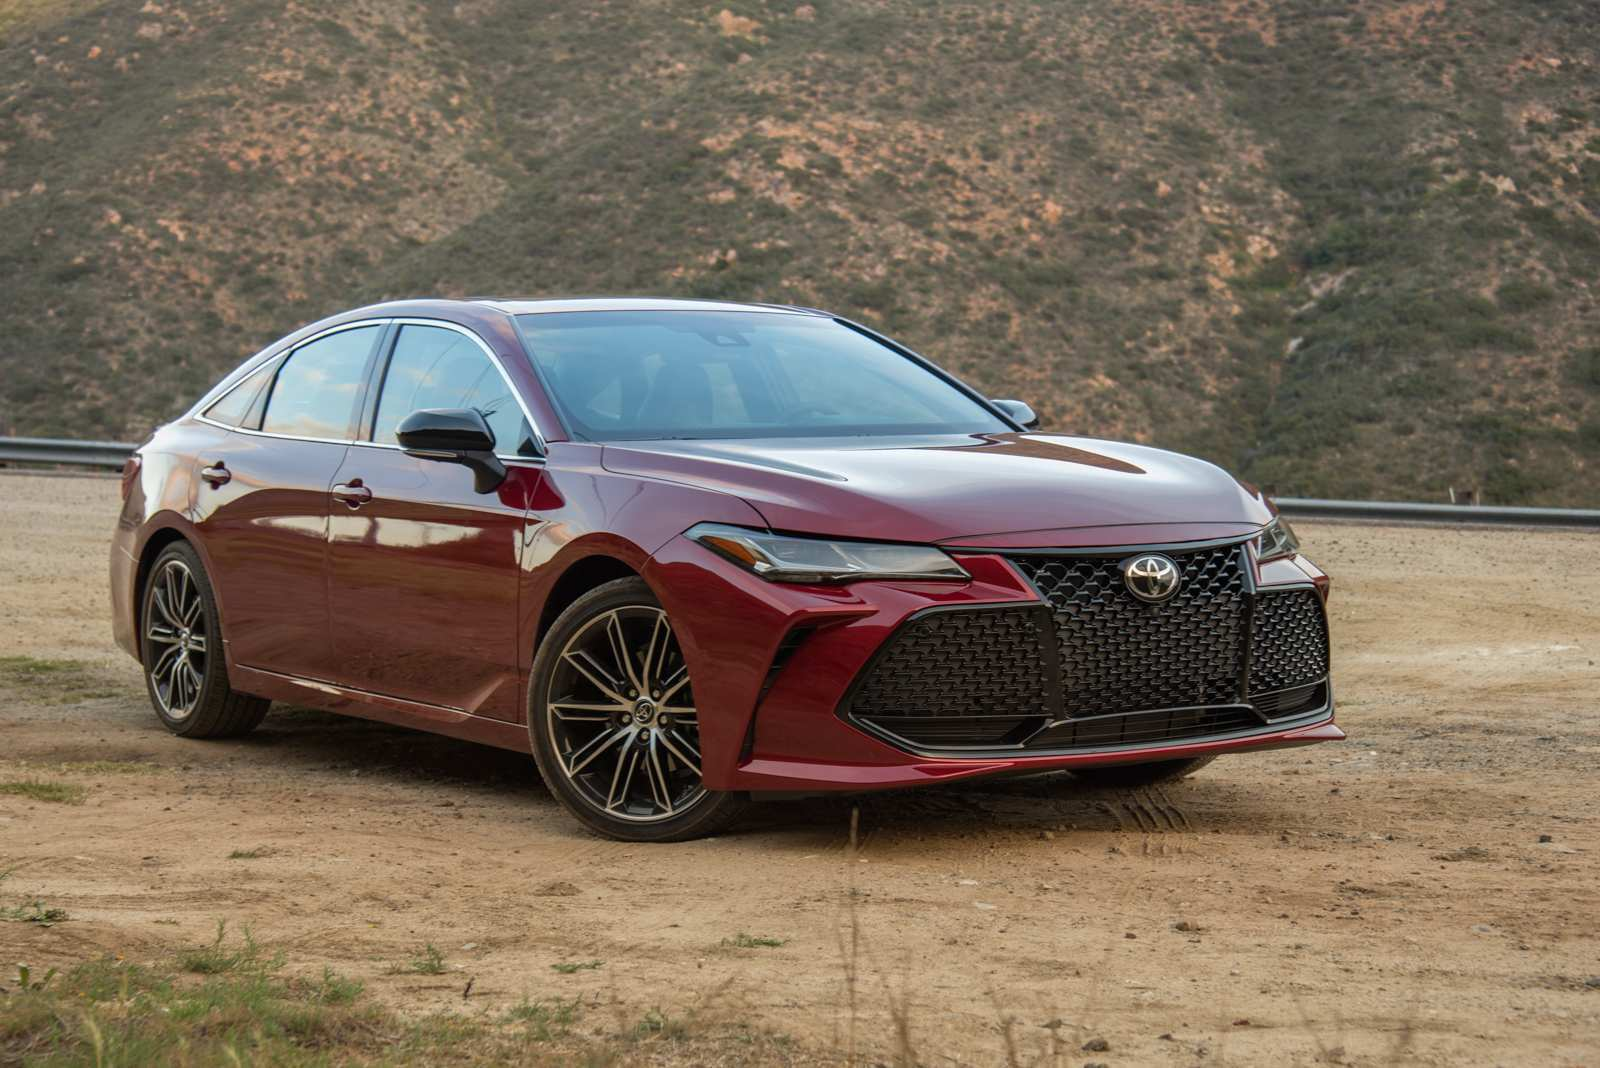 58 Great 2019 Toyota Avalon Xse New Review by 2019 Toyota Avalon Xse